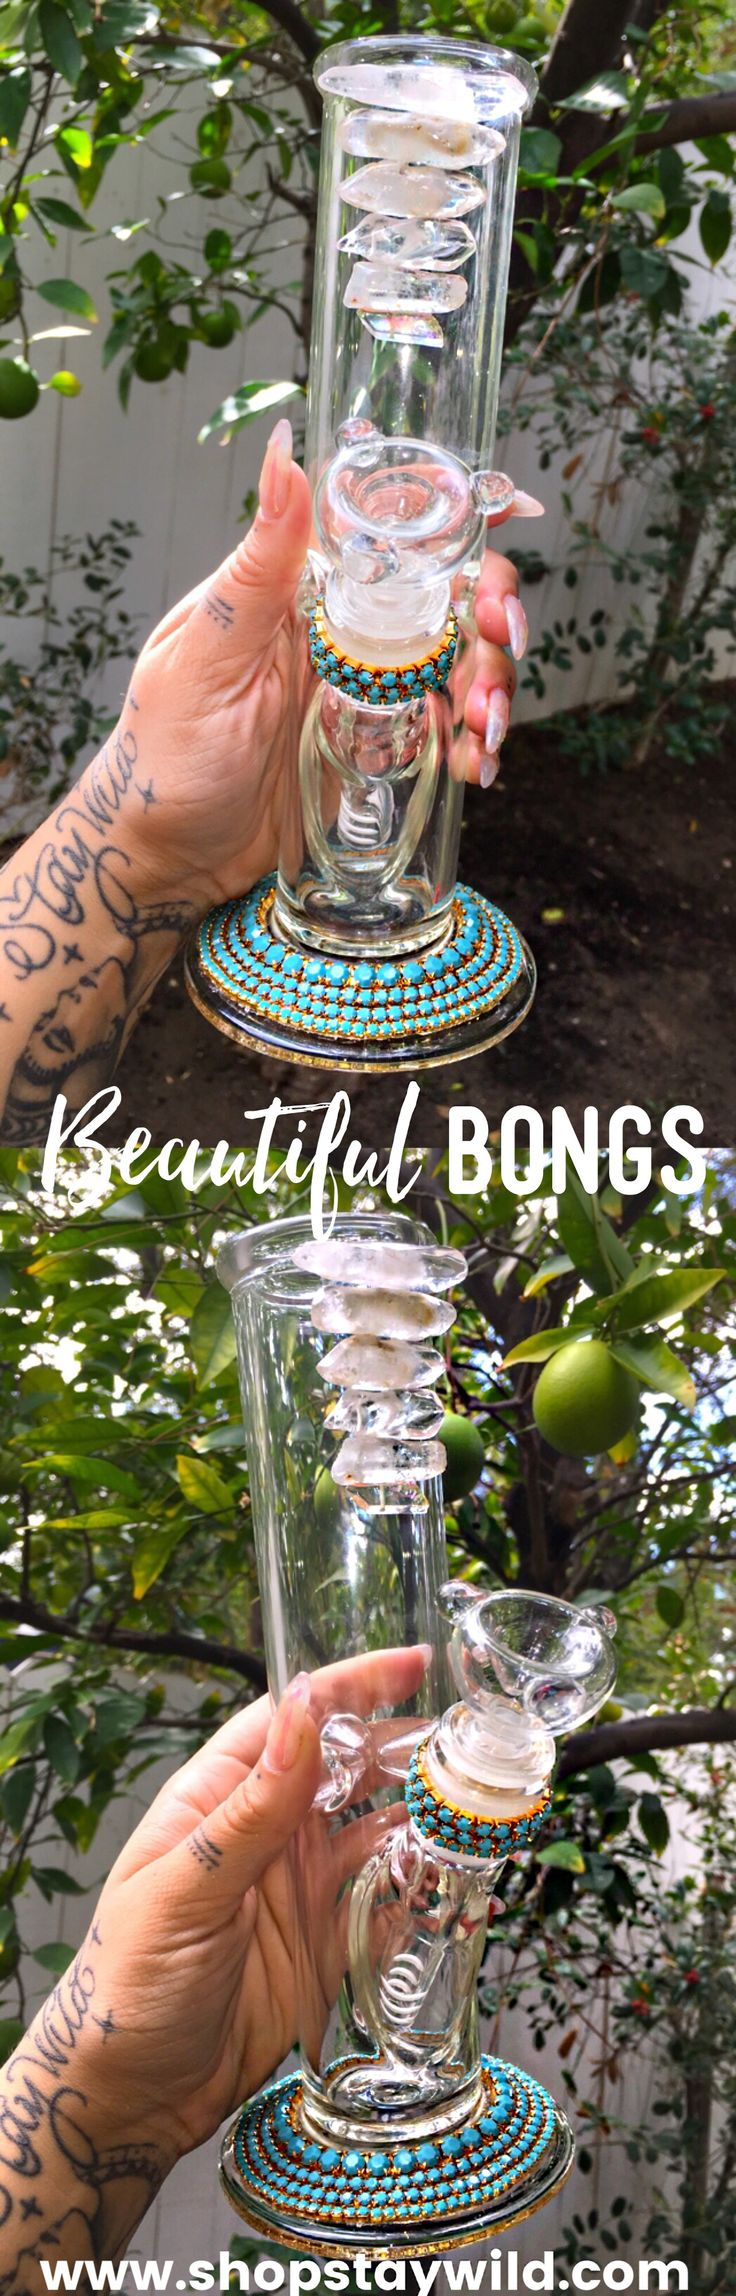 Beautiful bongs from www.shopstaywild.net✨#love #home #ideas #things #idea #marijuana #cannabis #stoned #high #cannabiscures #legalize #420 #710 #wax #shatter #glass #vape #style #ideas #ganja #kush #cbd #bath #smoke #bongbeauties #alien #ganjagirls #potprincess #bakedbarbie #stonergirl #stoner problems #weed humor #funny #cool